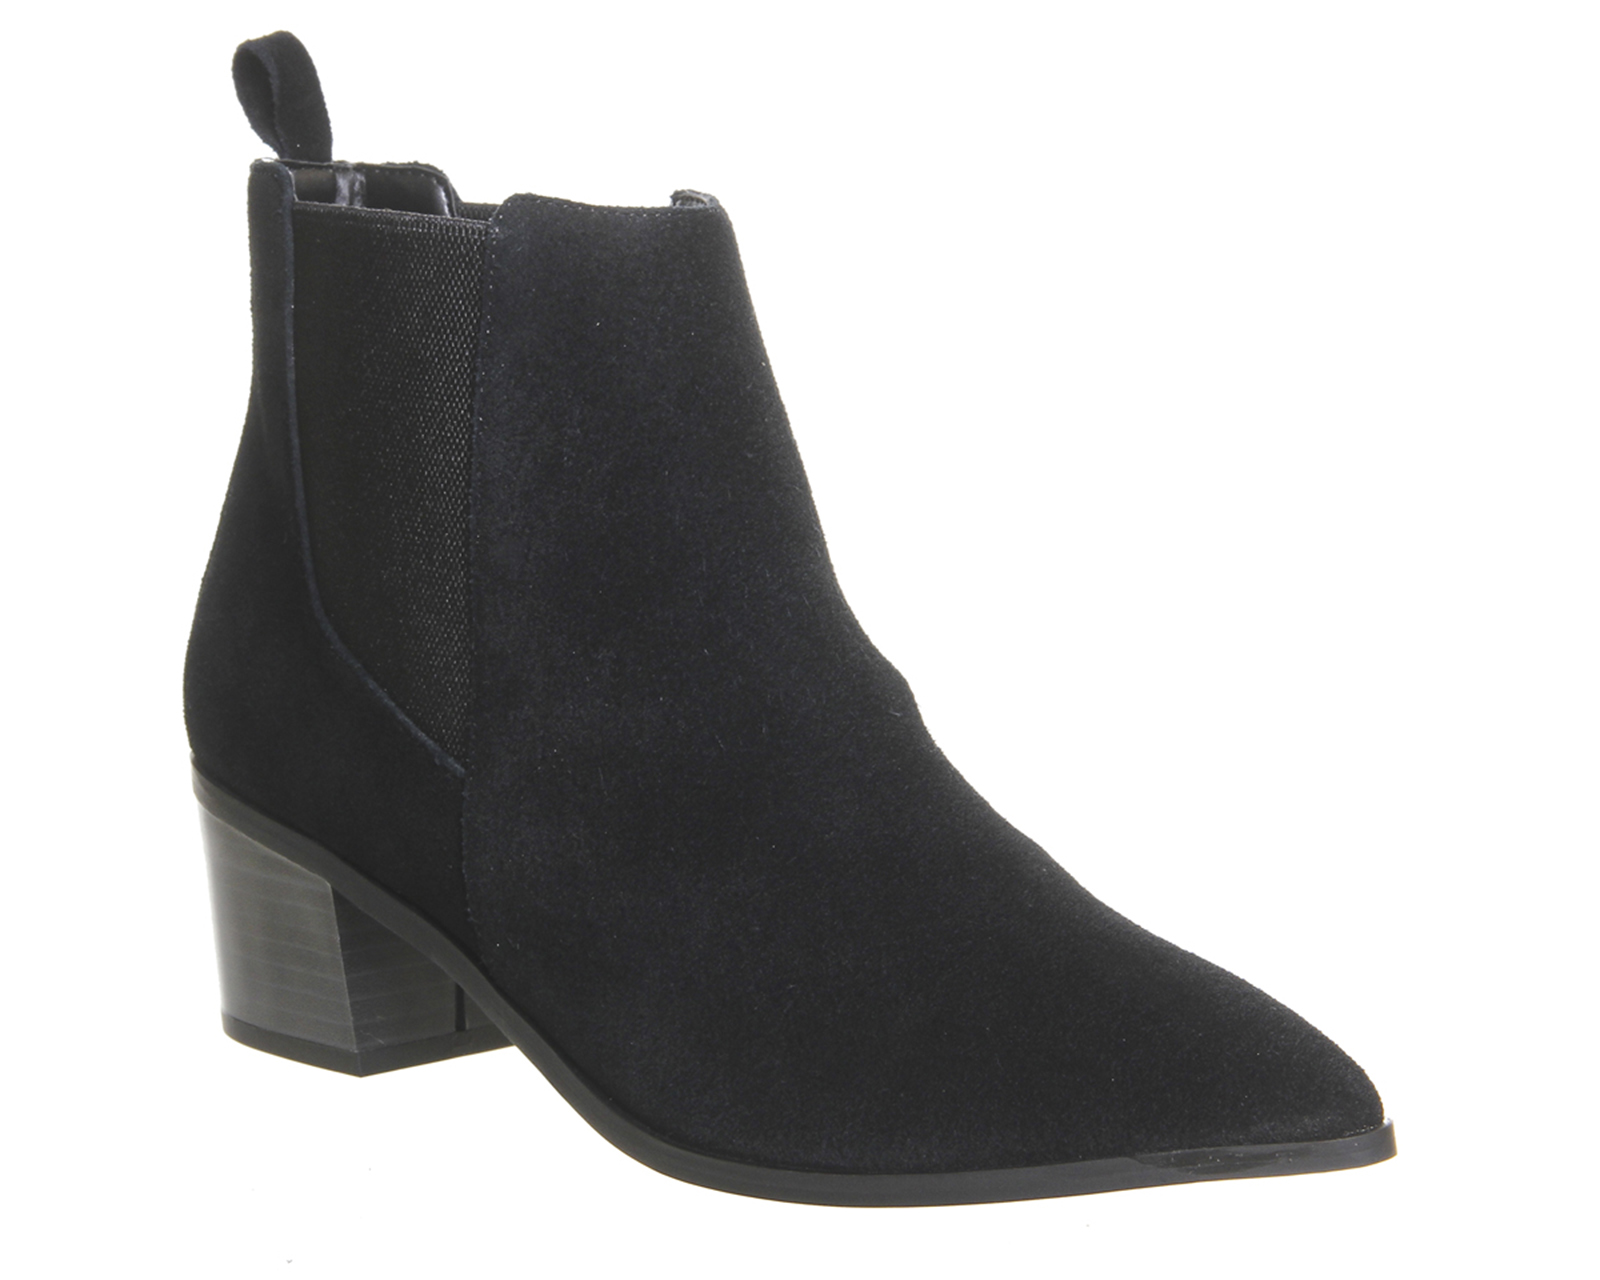 Perfect Black Suede Chelsea Boots - Boots - Shoes U0026 Boots - Women